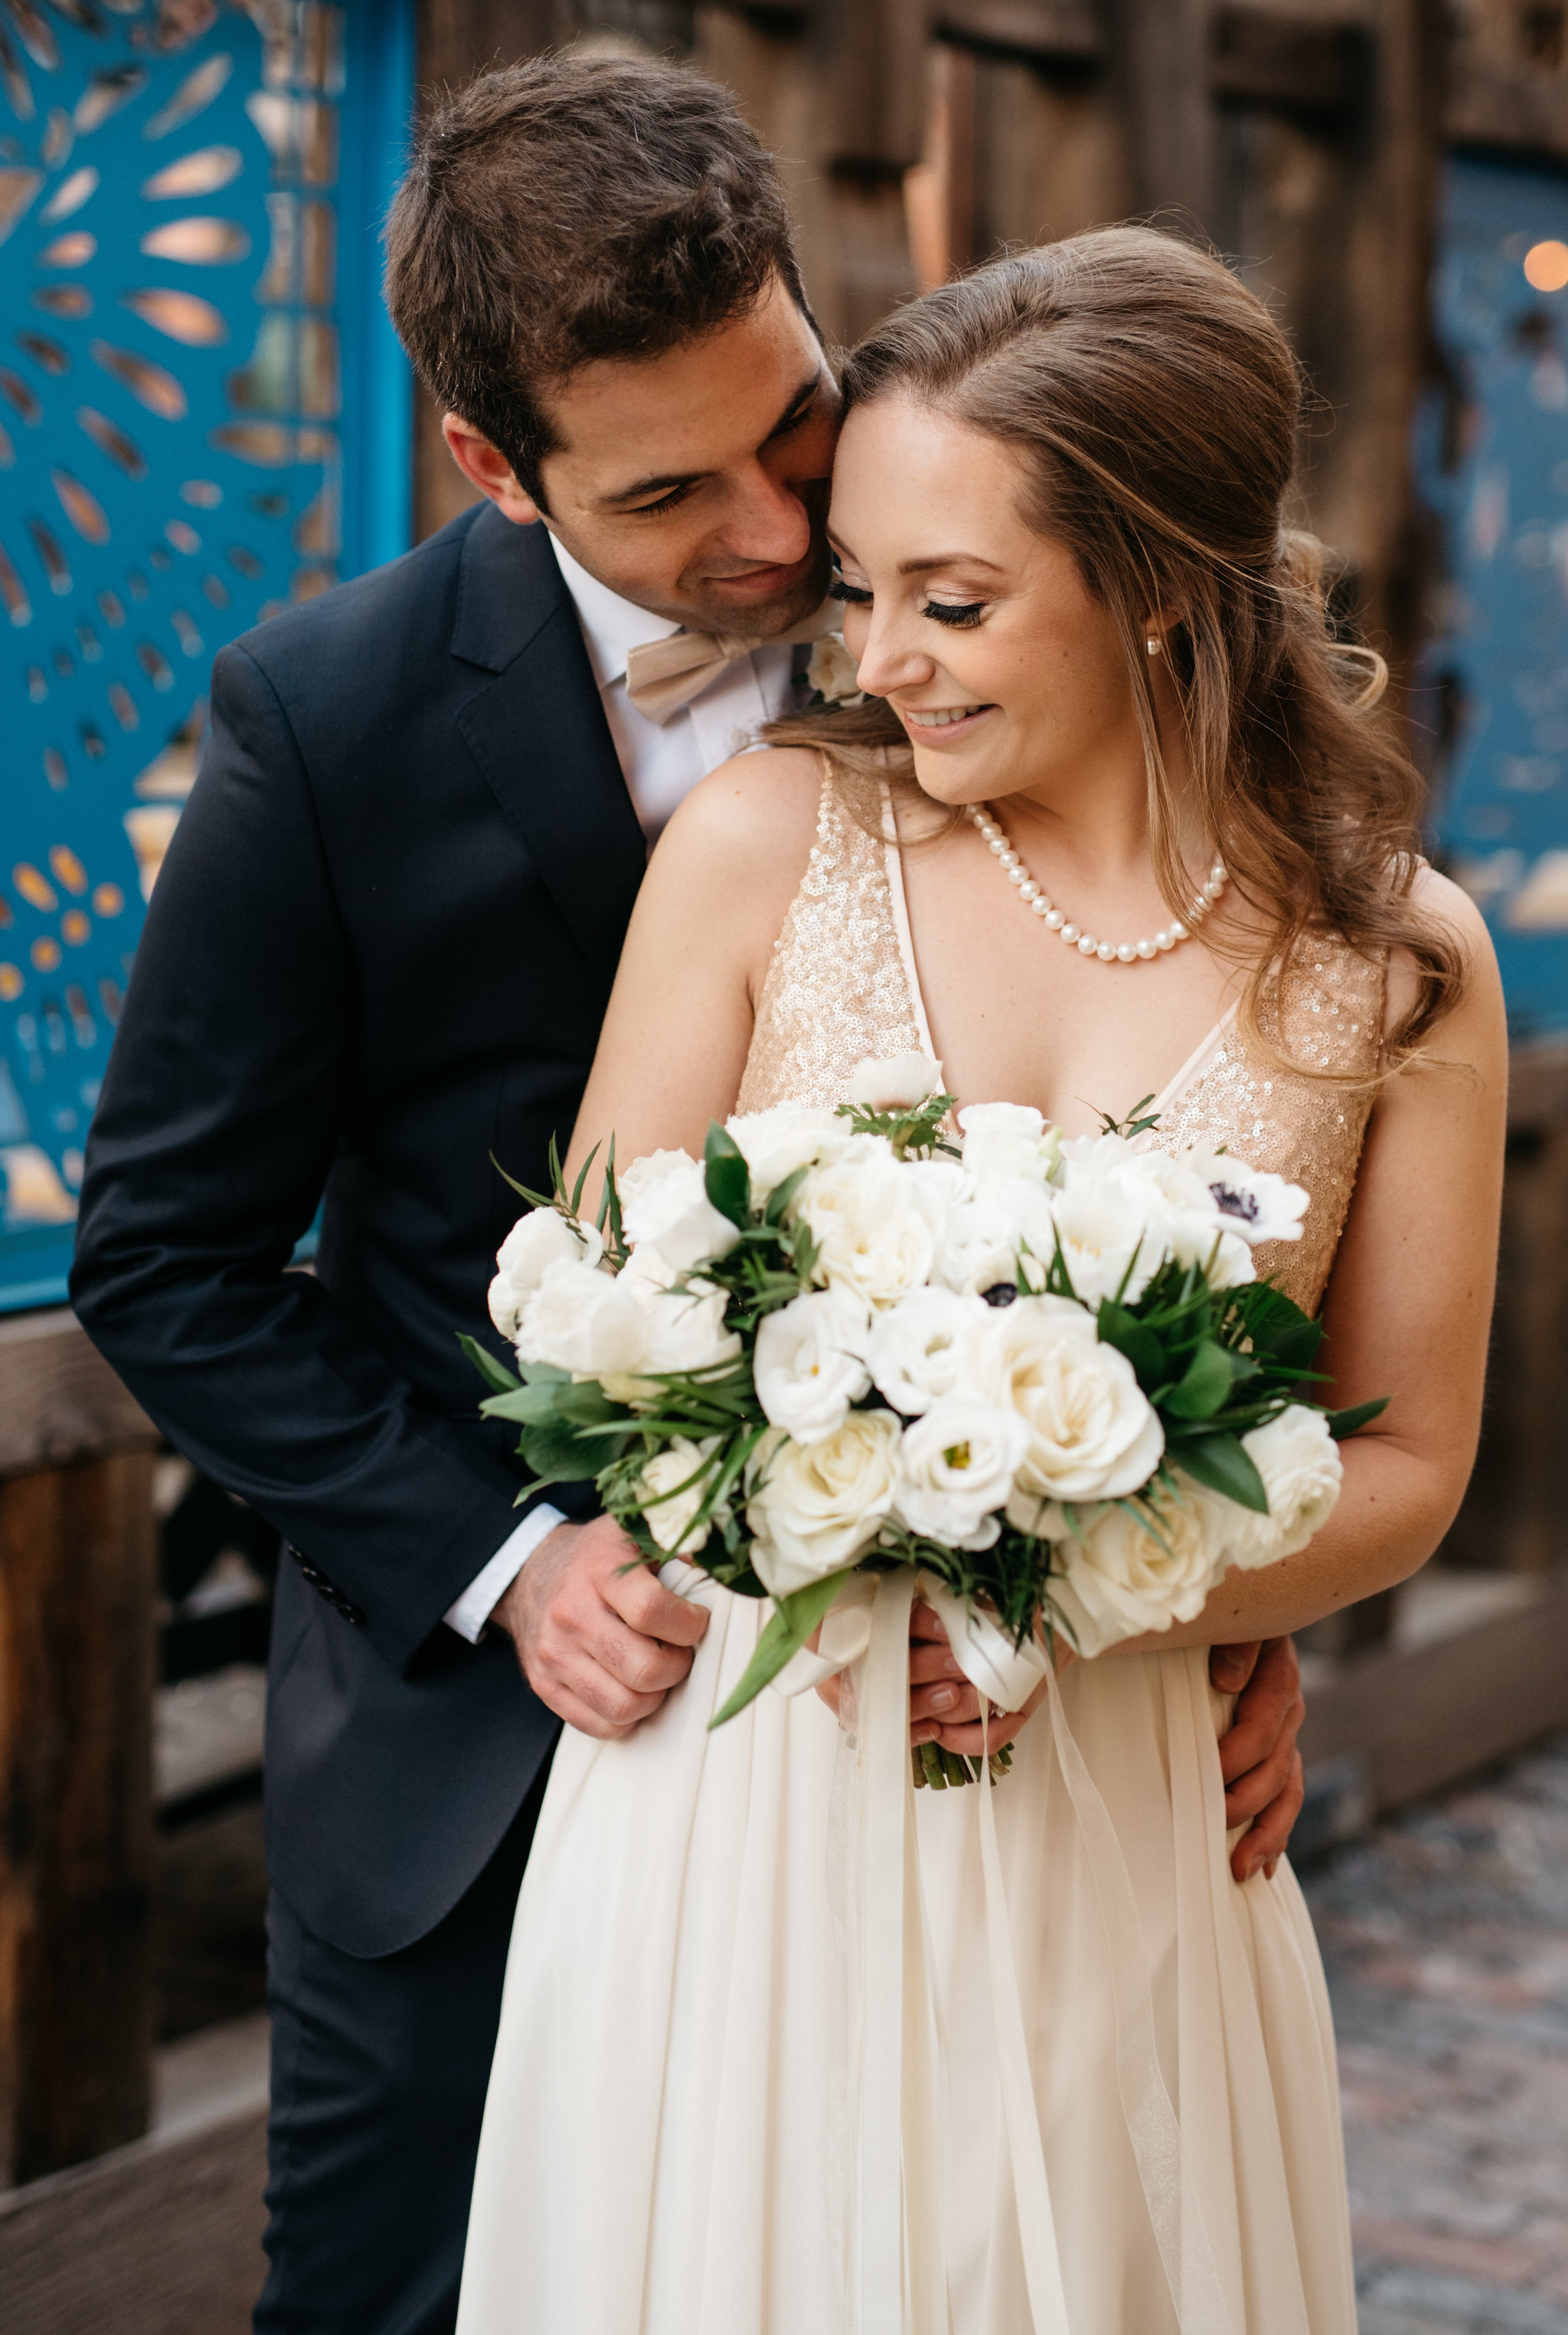 Distillery District wedding - Olive Photography Toronto